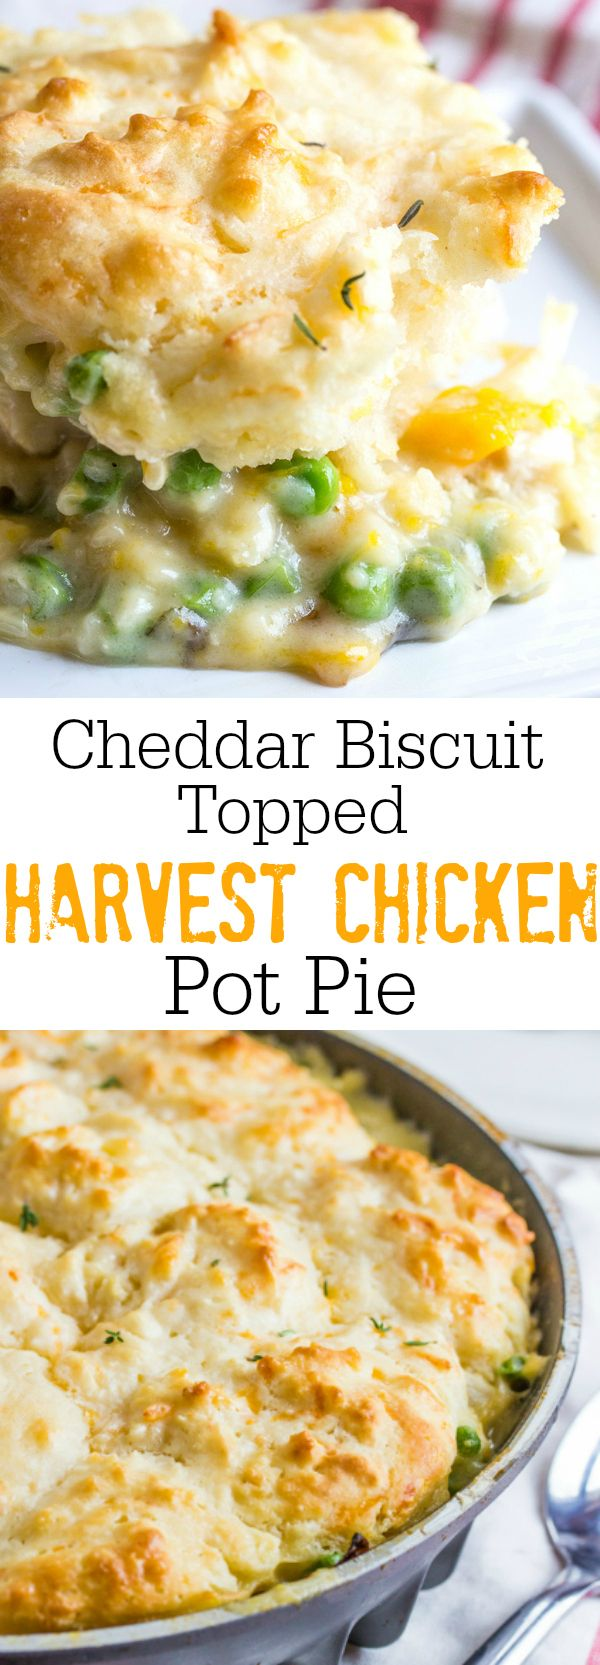 Creamy and delicious this Cheddar Biscuit Topped Harvest Chicken Pot Pie is full of hearty veggies and herbs and topped with soft and fluffy cheddar drop biscuits. @nordicware